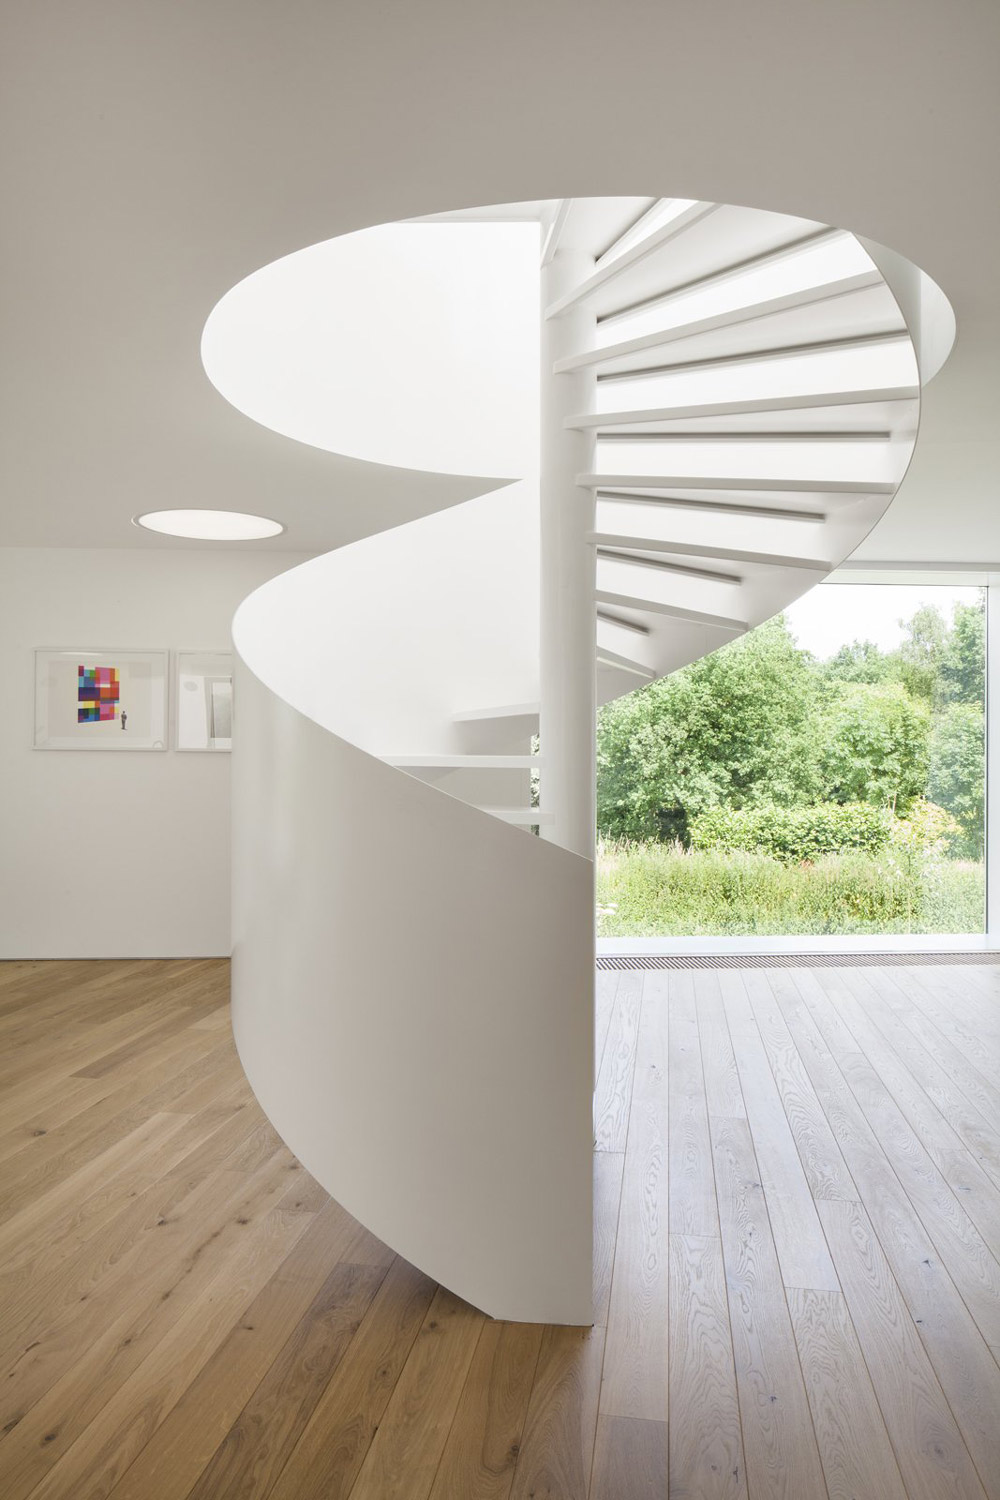 Spiral Stairs, VMVK House in Sint-Katelijne-Waver, Belgium by dmvA